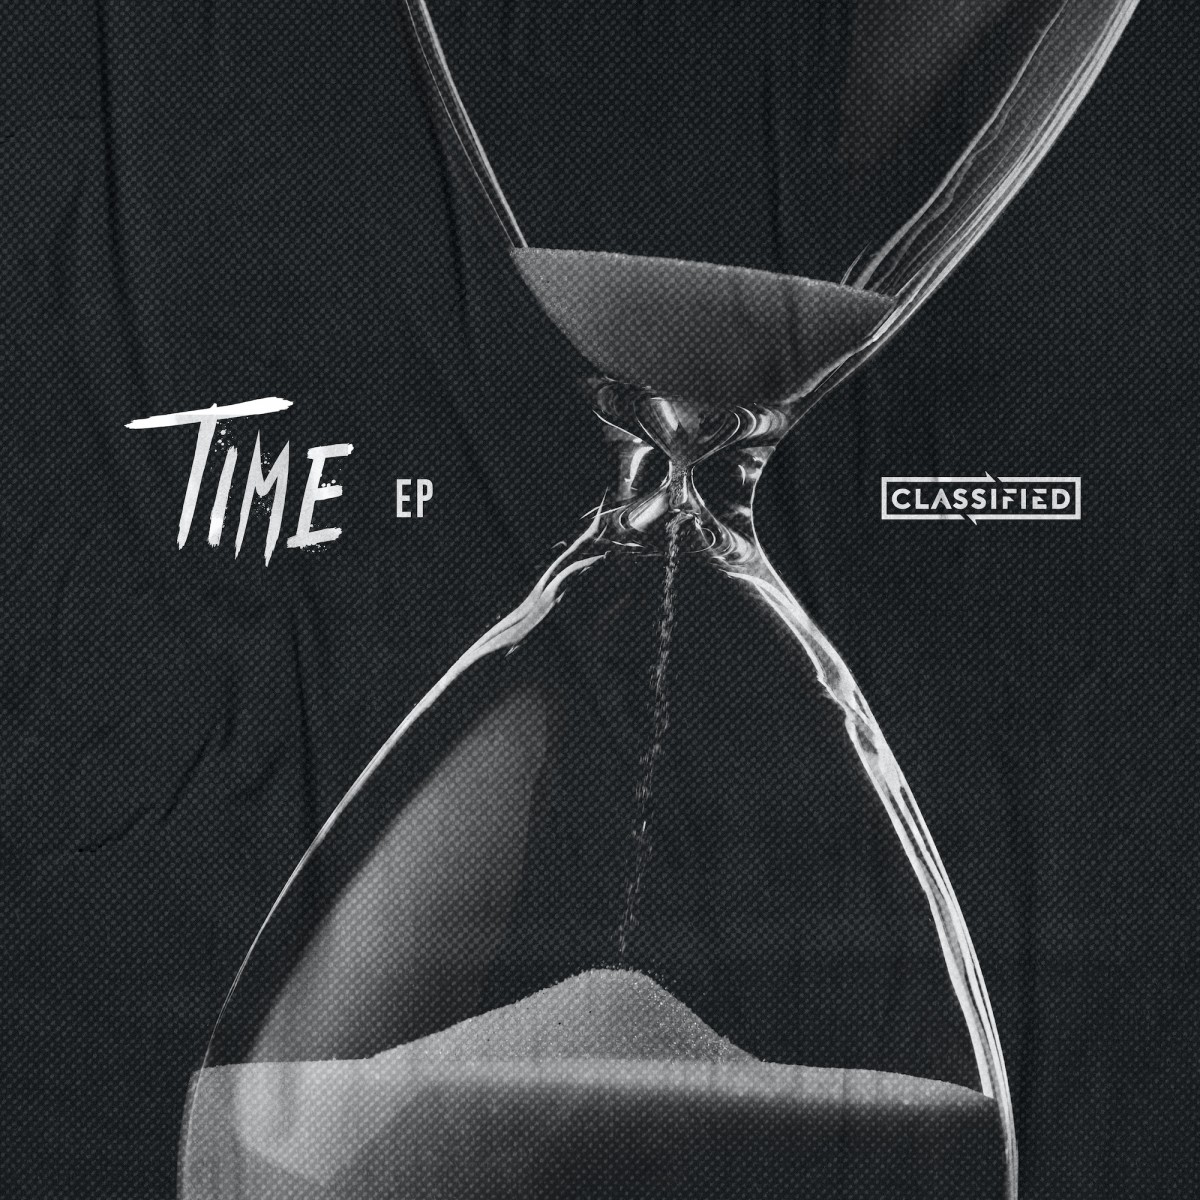 Classified Drops New 'Time' EP